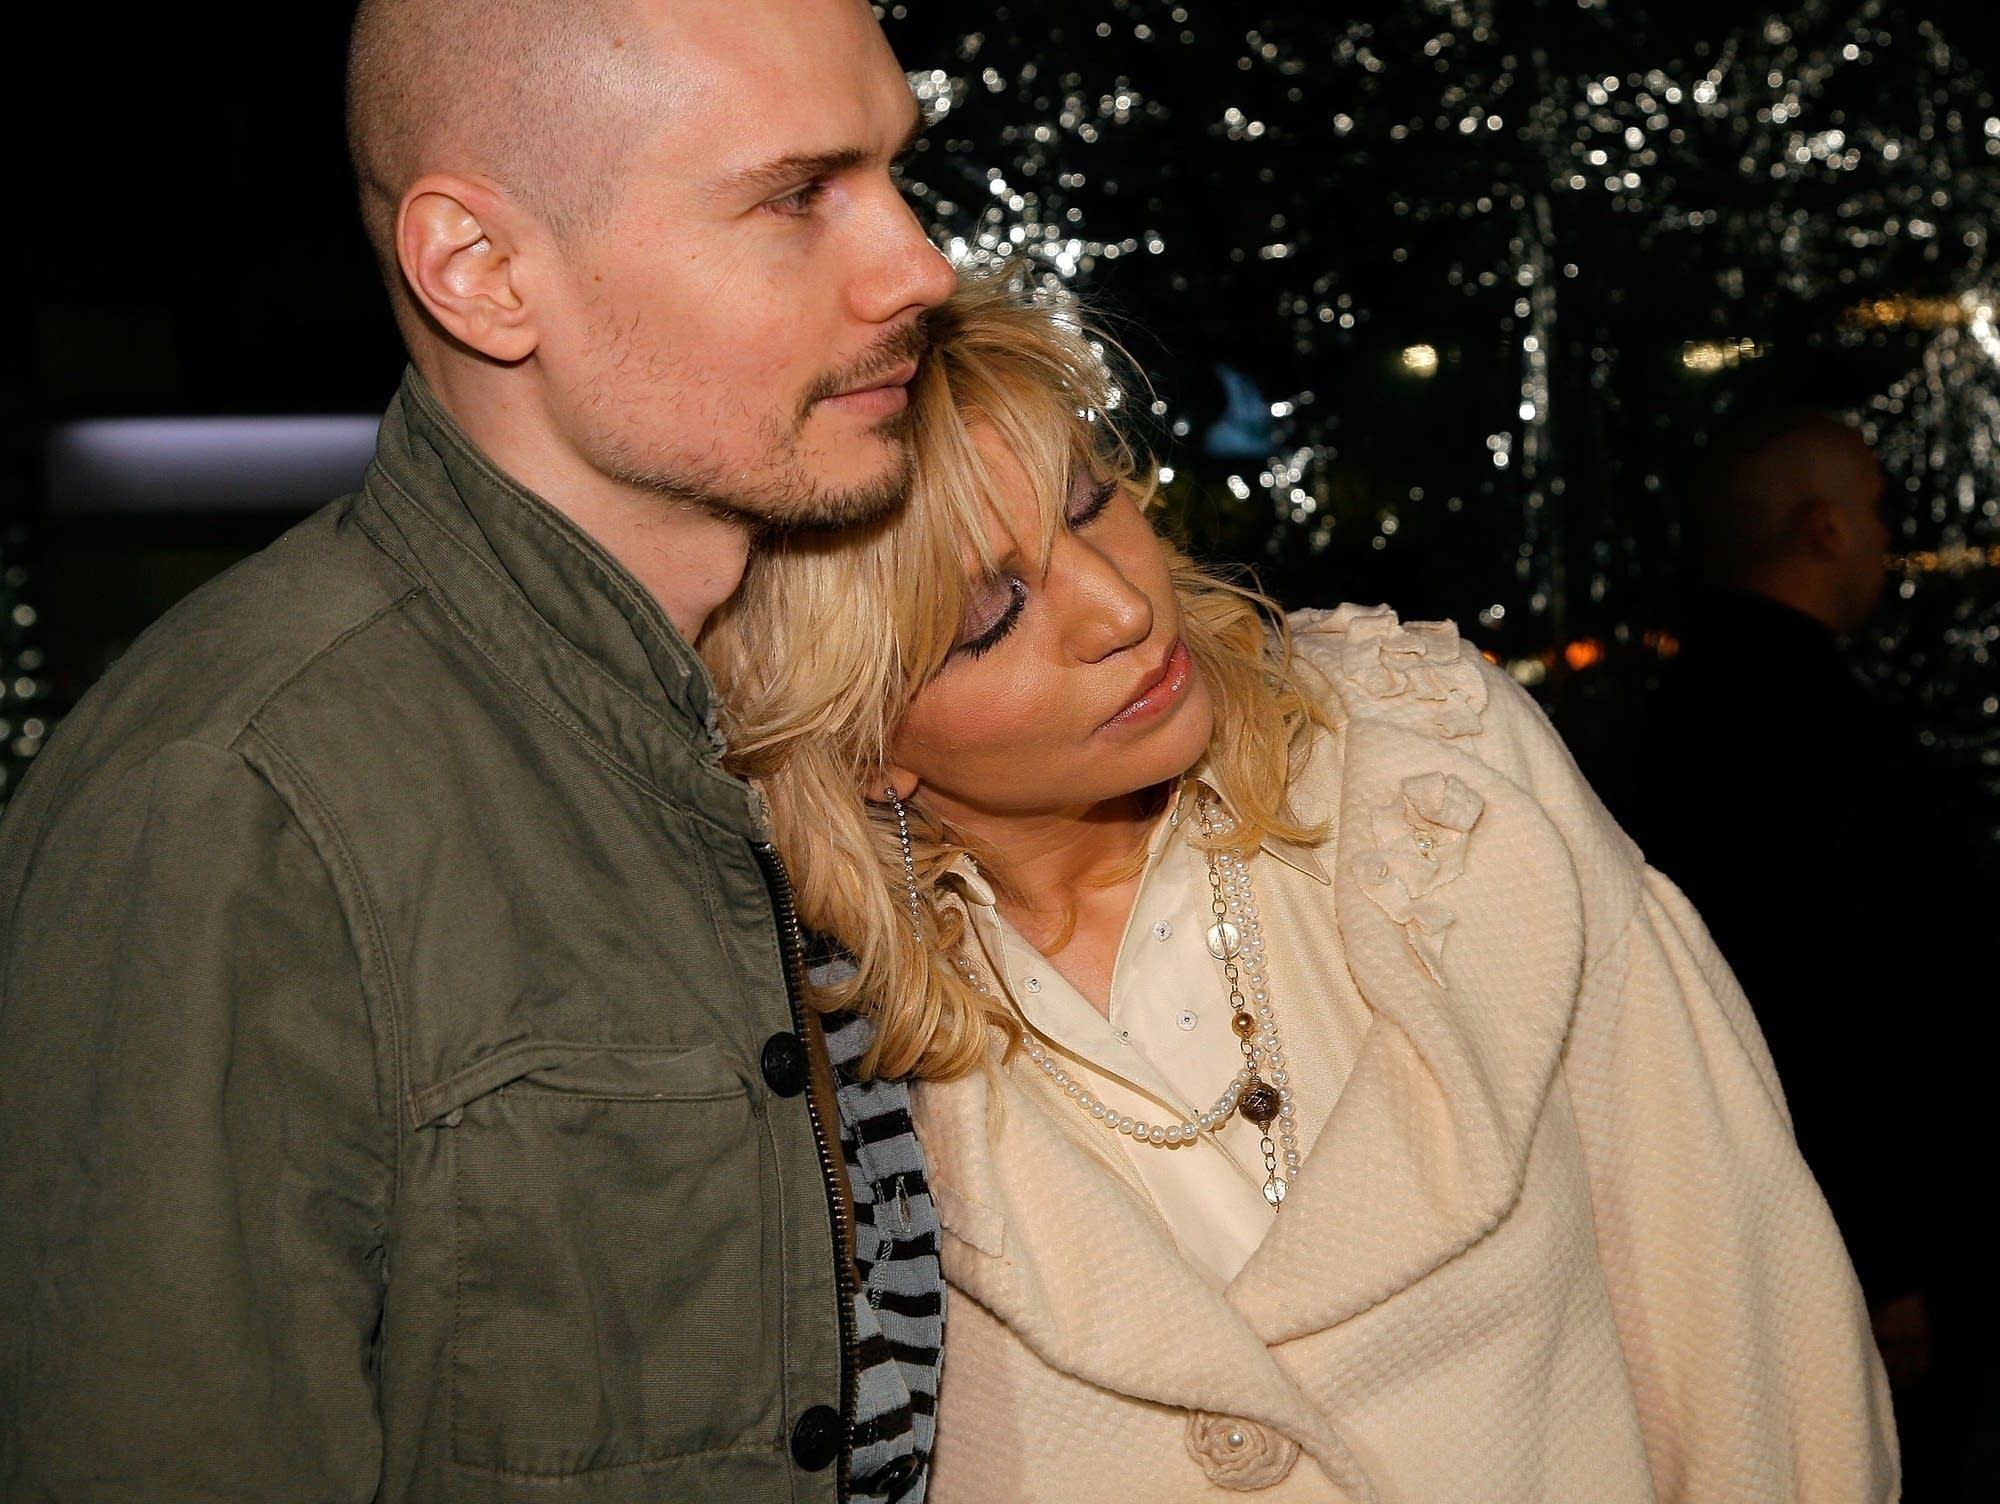 Billy Corgan and Courtney Love in 2007.